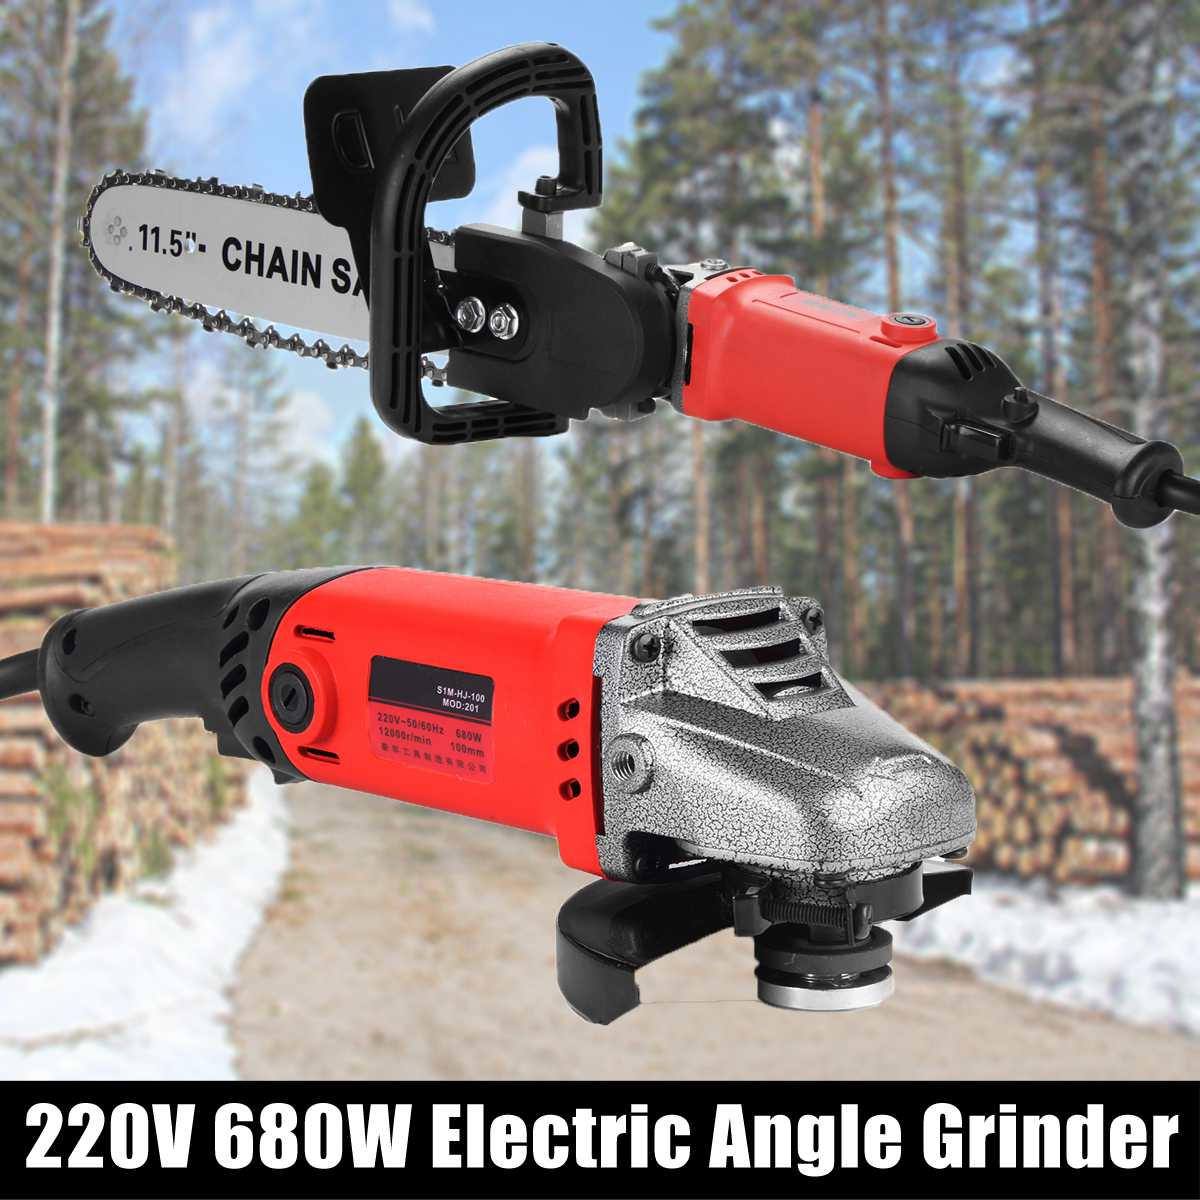 220V 680W 12000rpm Electric Angle Grinder Spindle M10 Chainsaw Bracket Change For Polishing